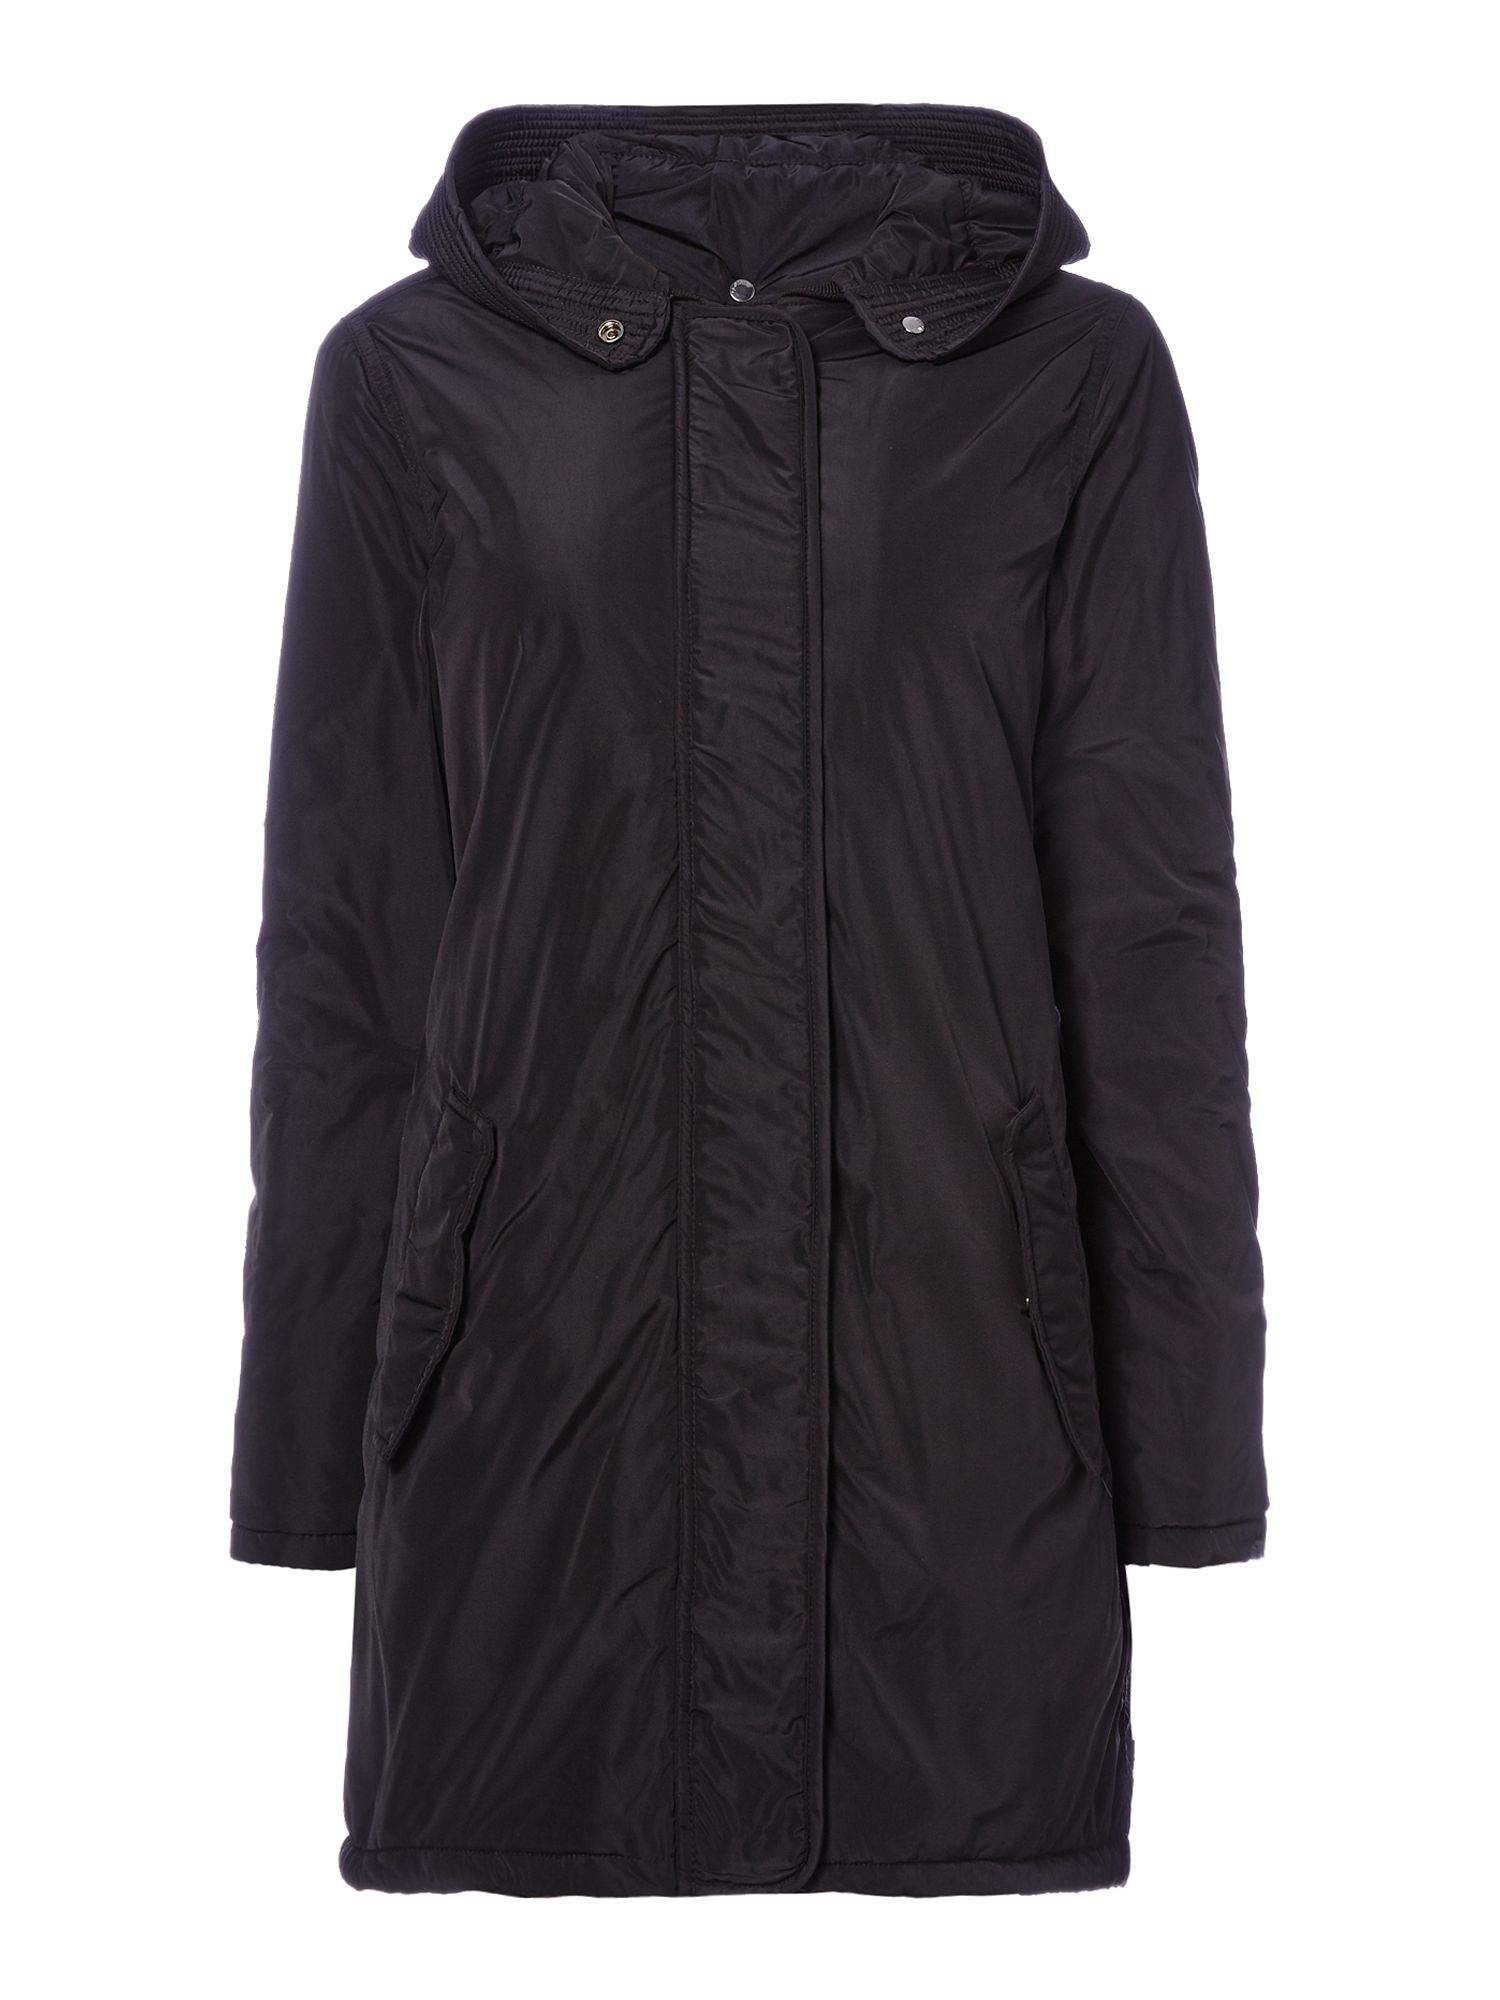 Maison Scotch Black parka coat, Black